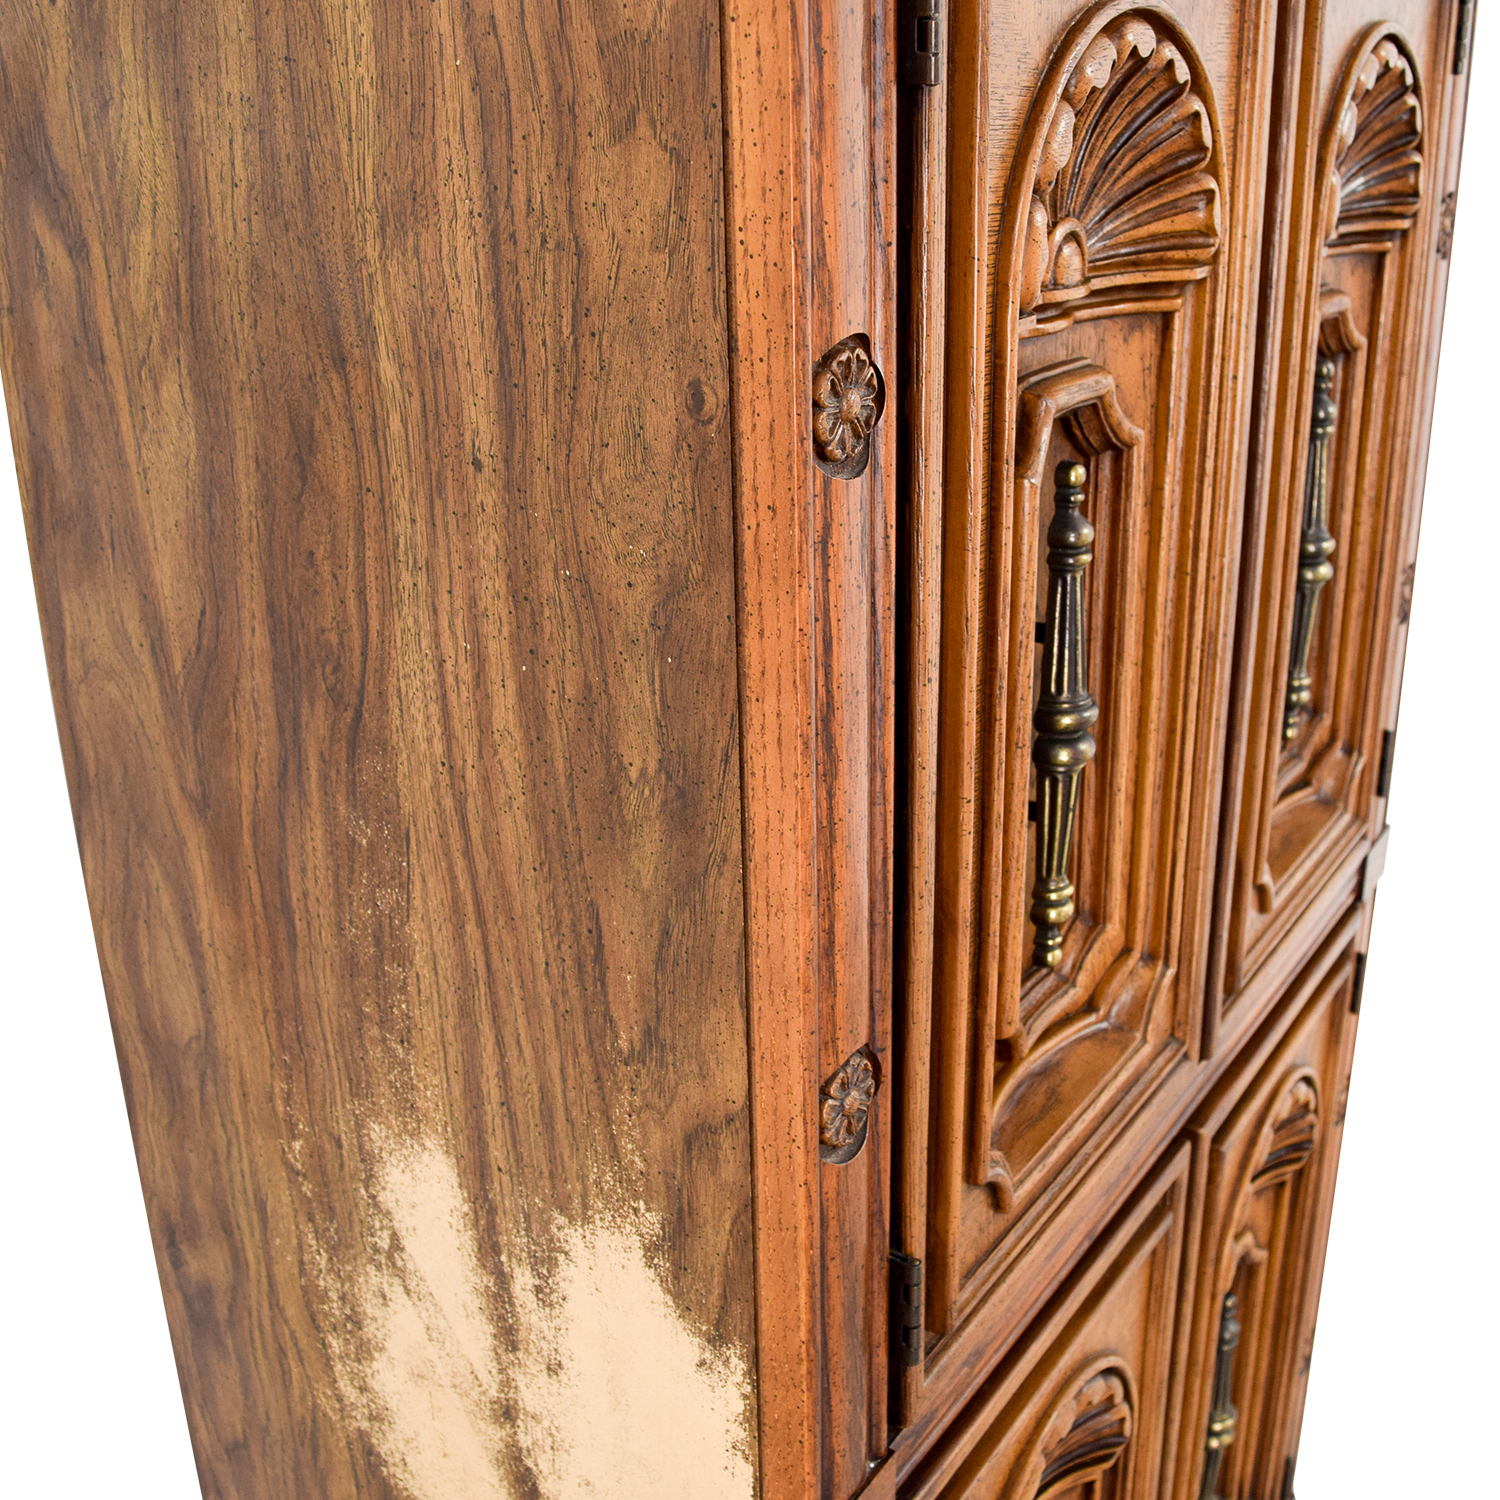 shop Seaman's Carved Wood Armoire Seaman's